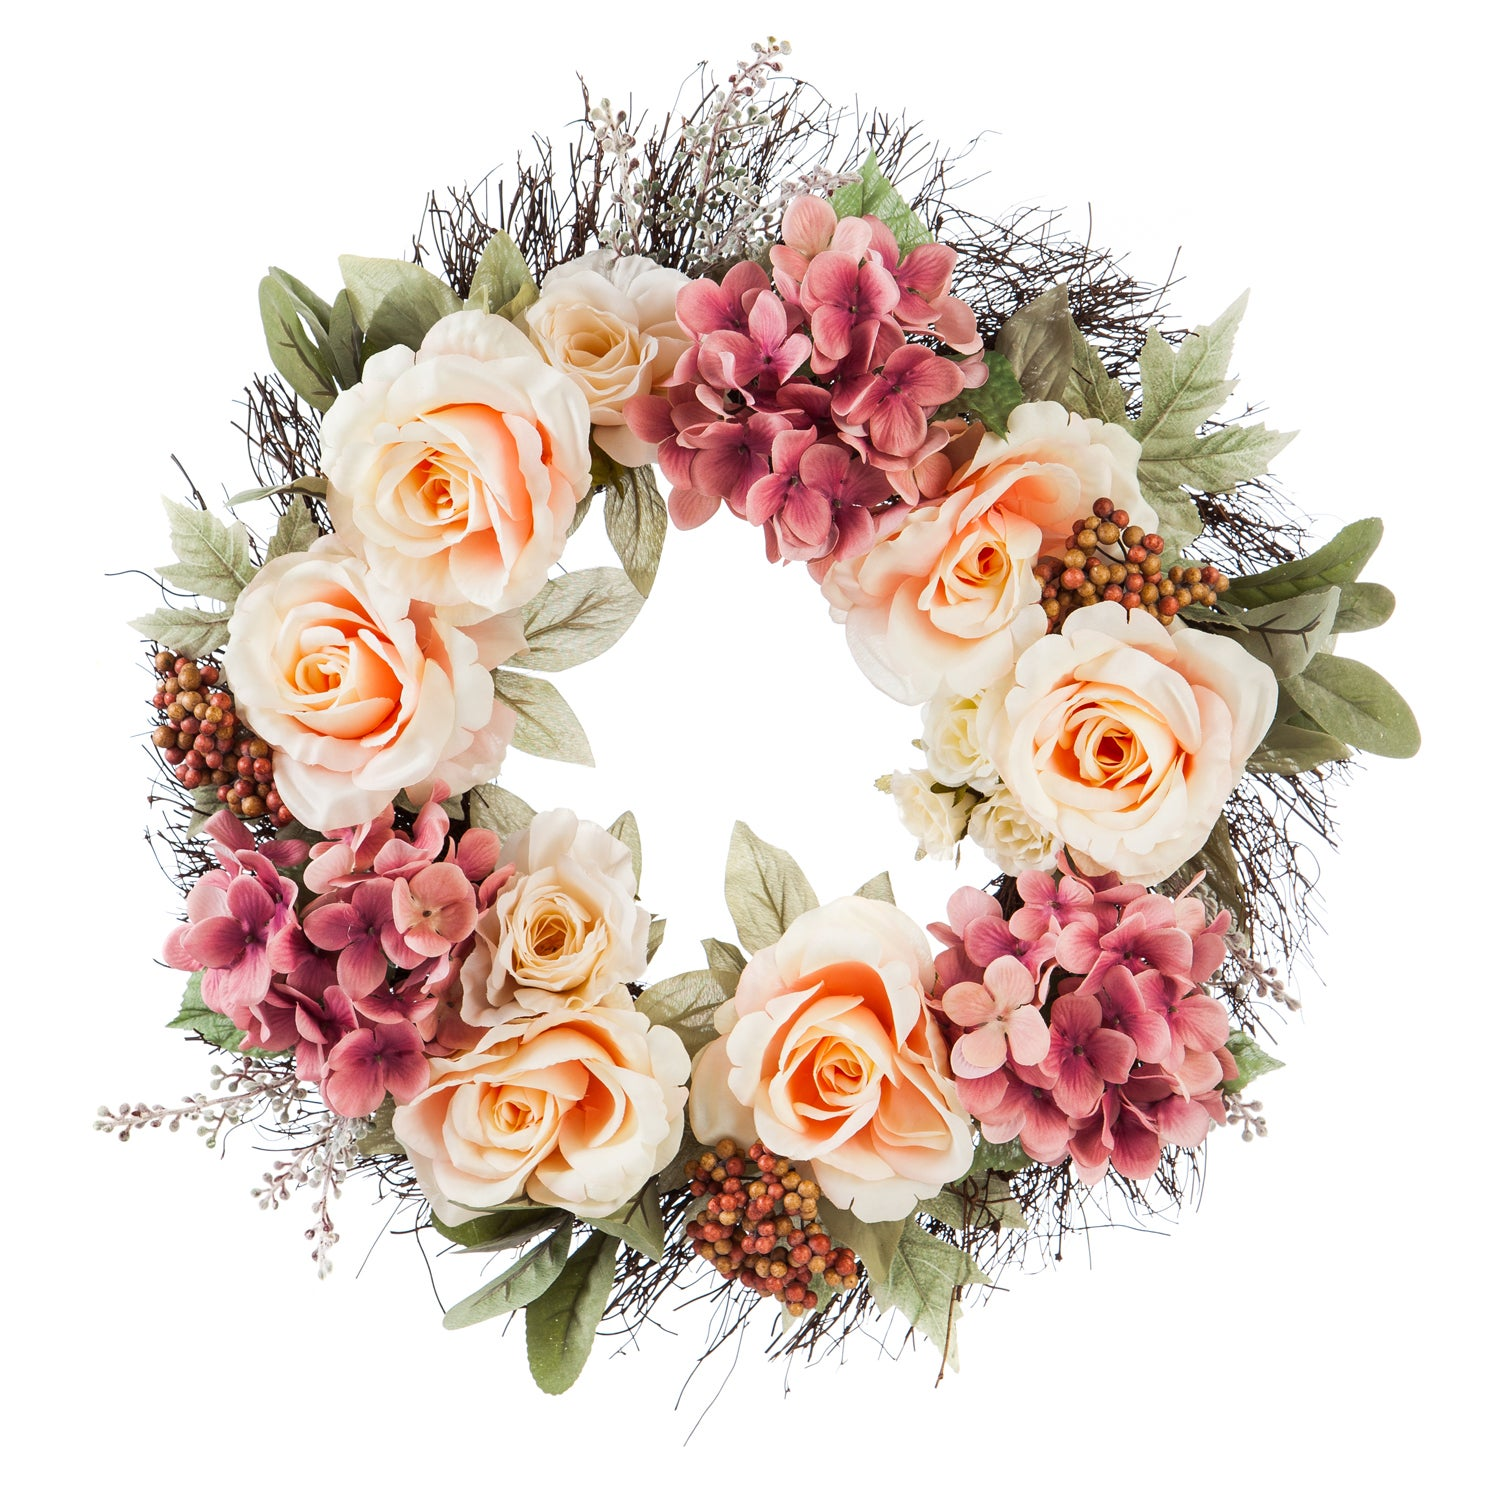 Twig Wreath with Roses, Hydrangeas, Pink Flowers, and Berries